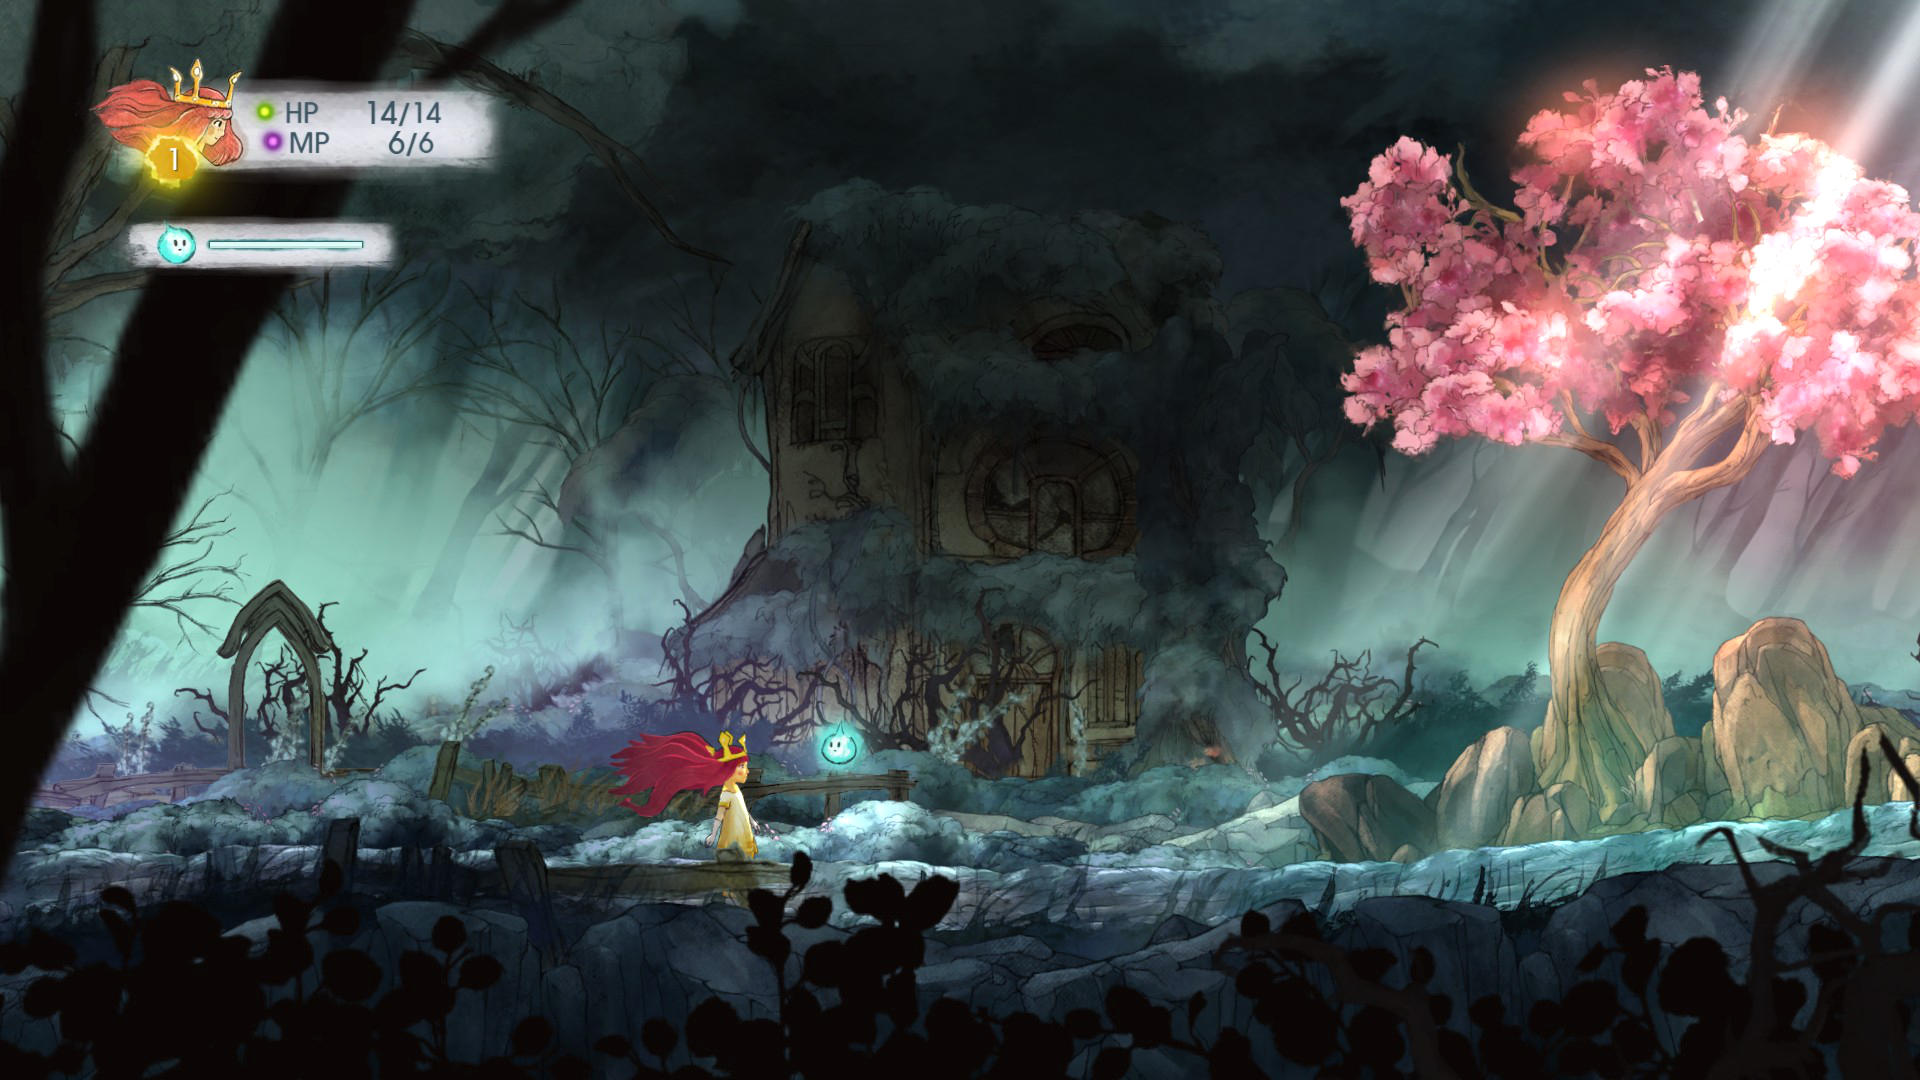 Strings Quotes Wallpaper Child Of Light 2014 Manual Plp Instructions Wsgf